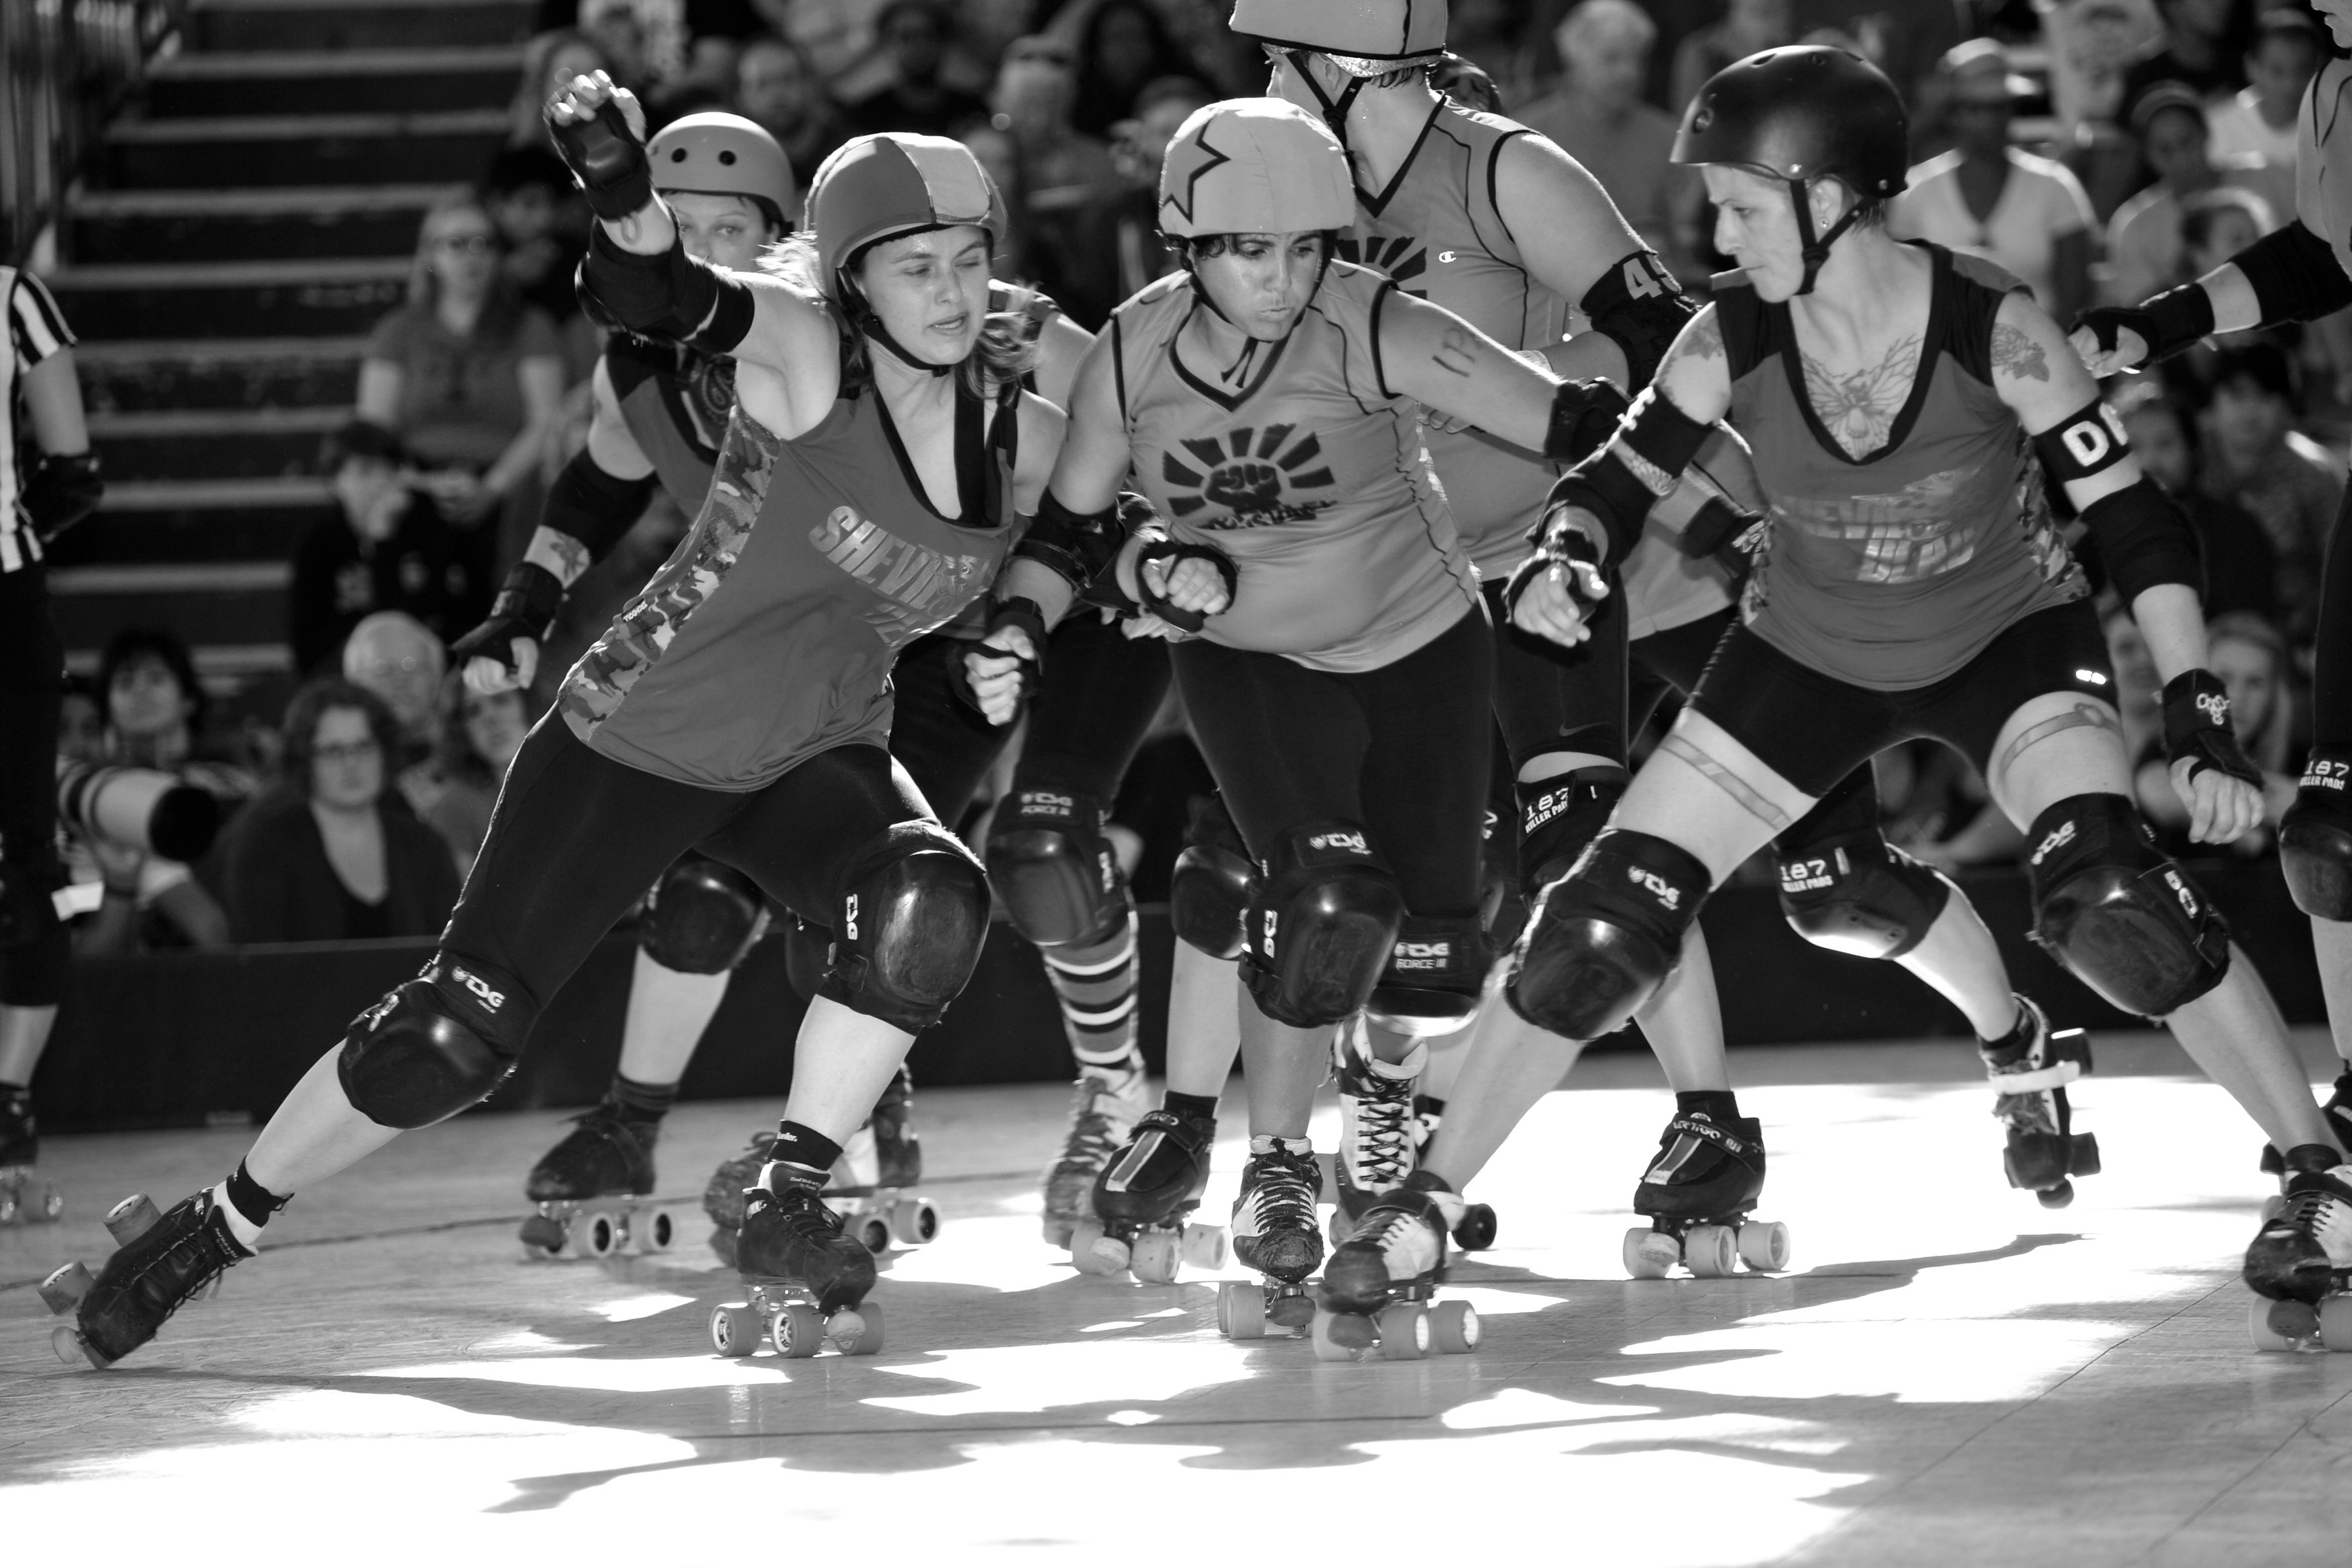 Roller skating derby - About Us